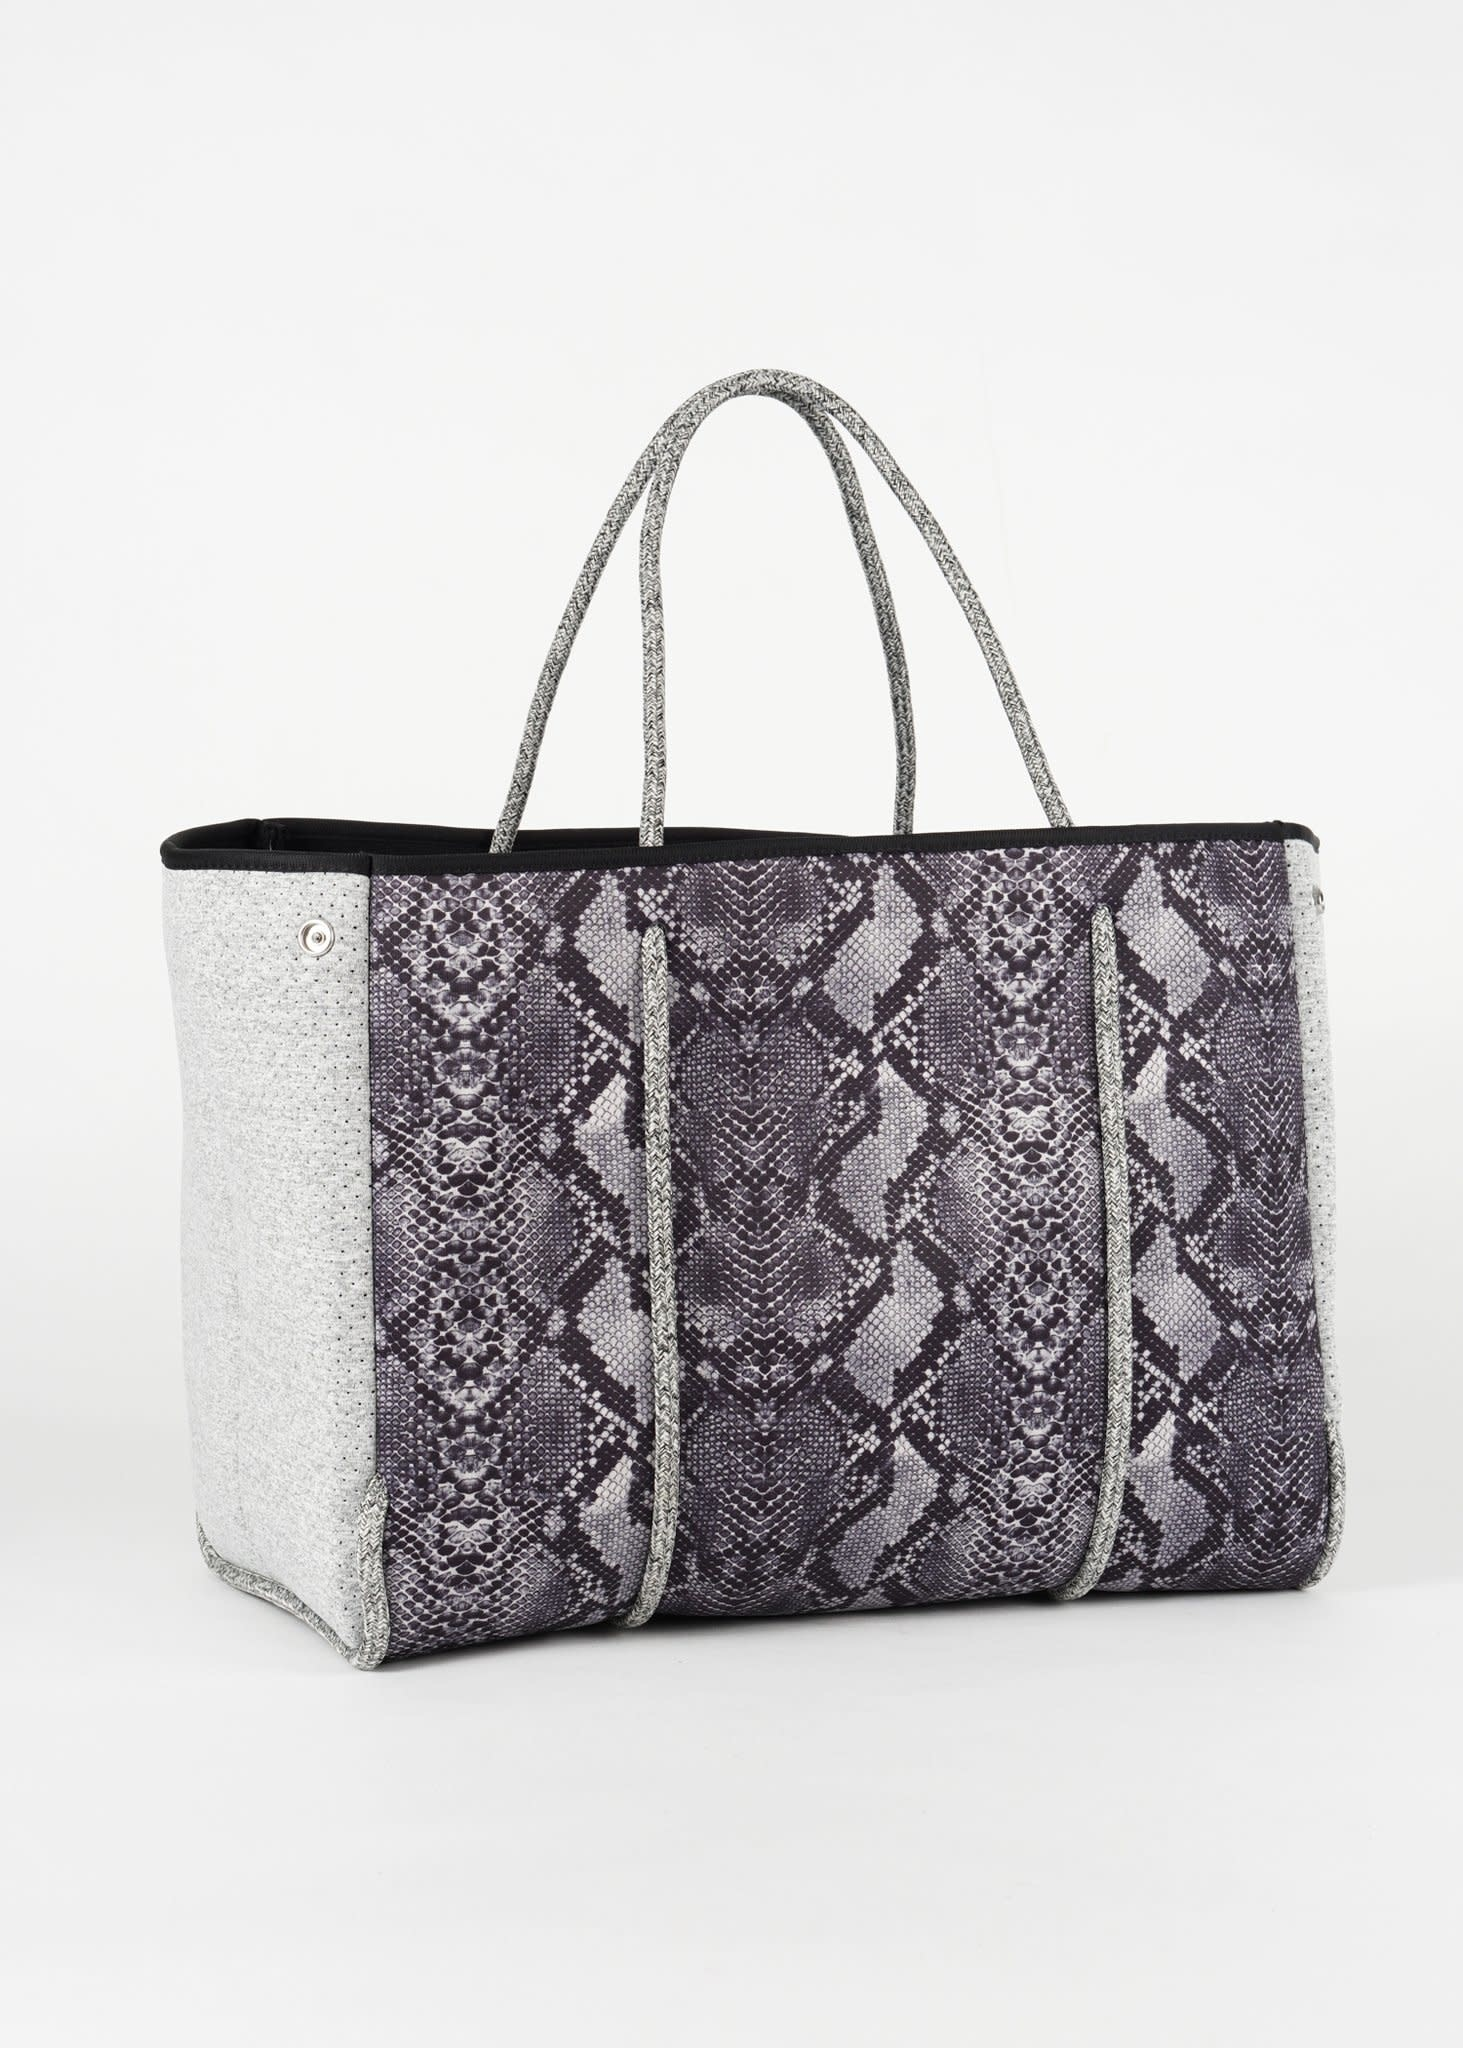 GREYSON GREYSON REBEL HANDBAG - PYTHON/LIGHT GREY